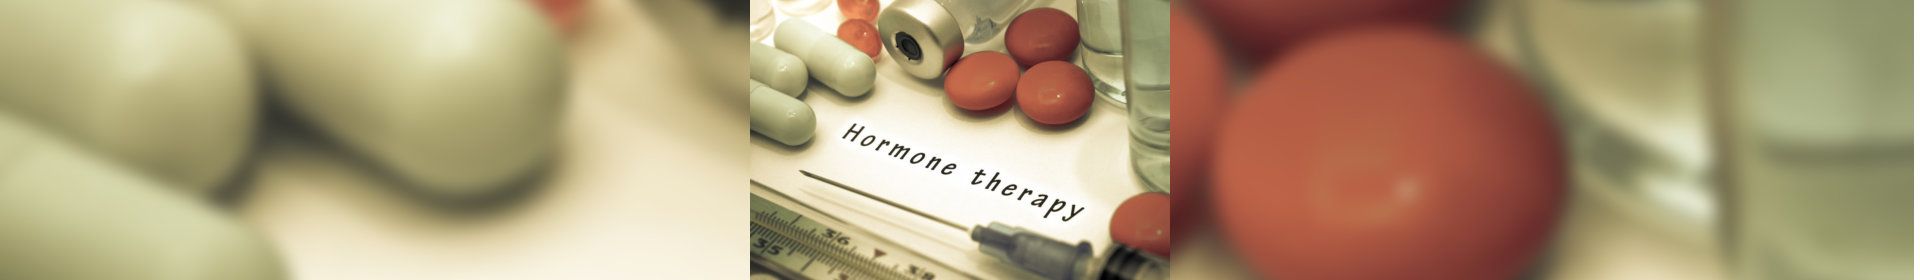 hormone replacement therapy banner